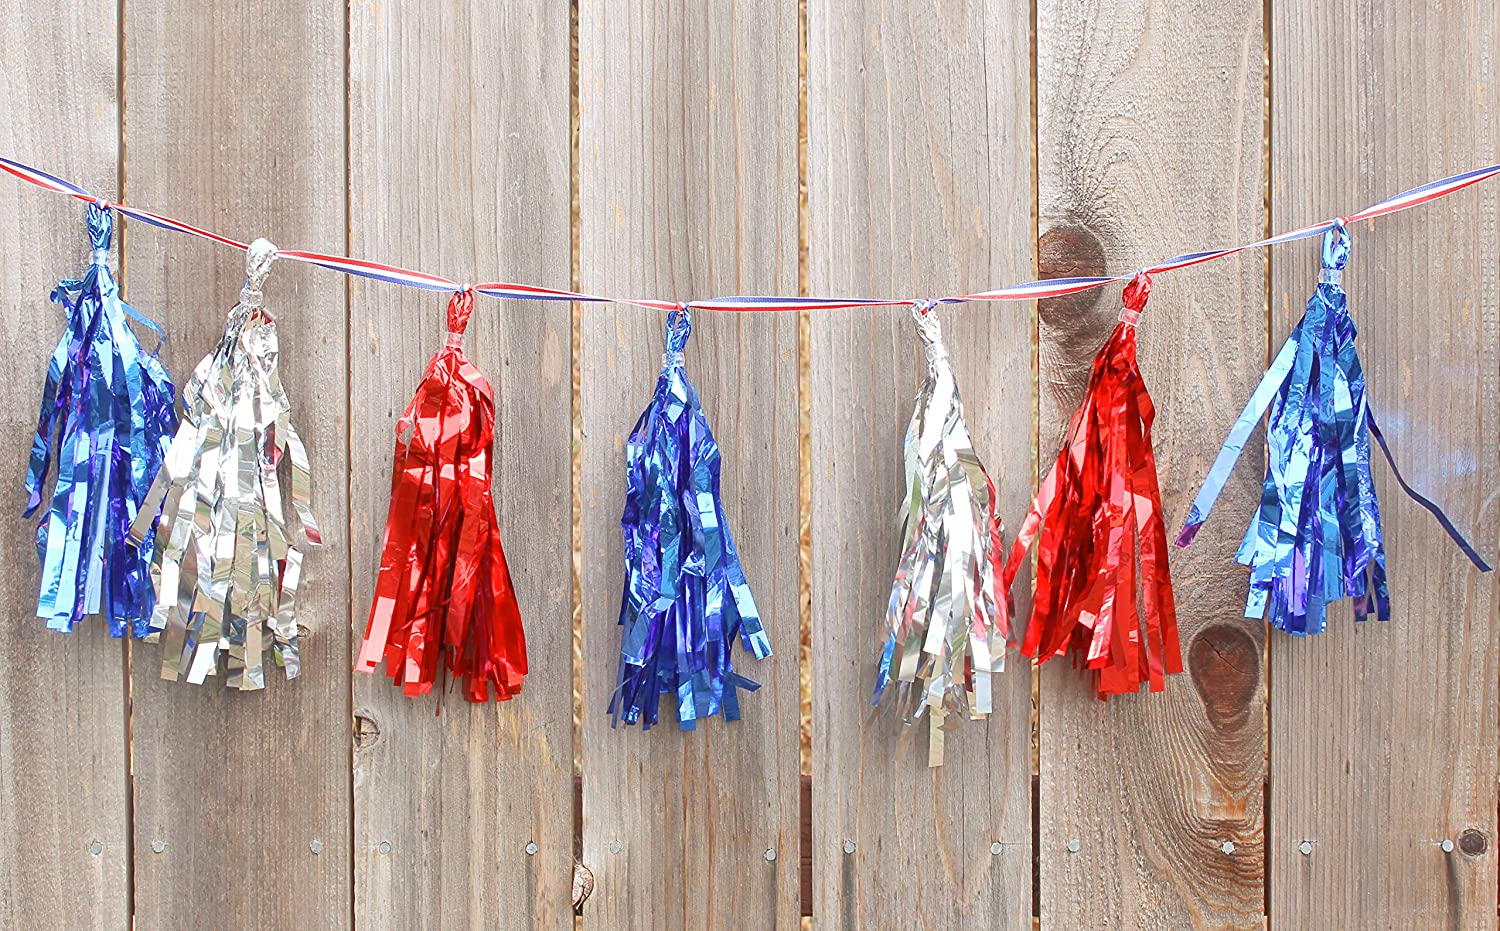 Election Decorations Patriotic Metallic Garland on Pre-Assembled Party D/écor 4th of July Memorial Day Banner Primary Military Ceremony Bosen 16 Tassels Per Package Red White Blue 8 ft Ribbon